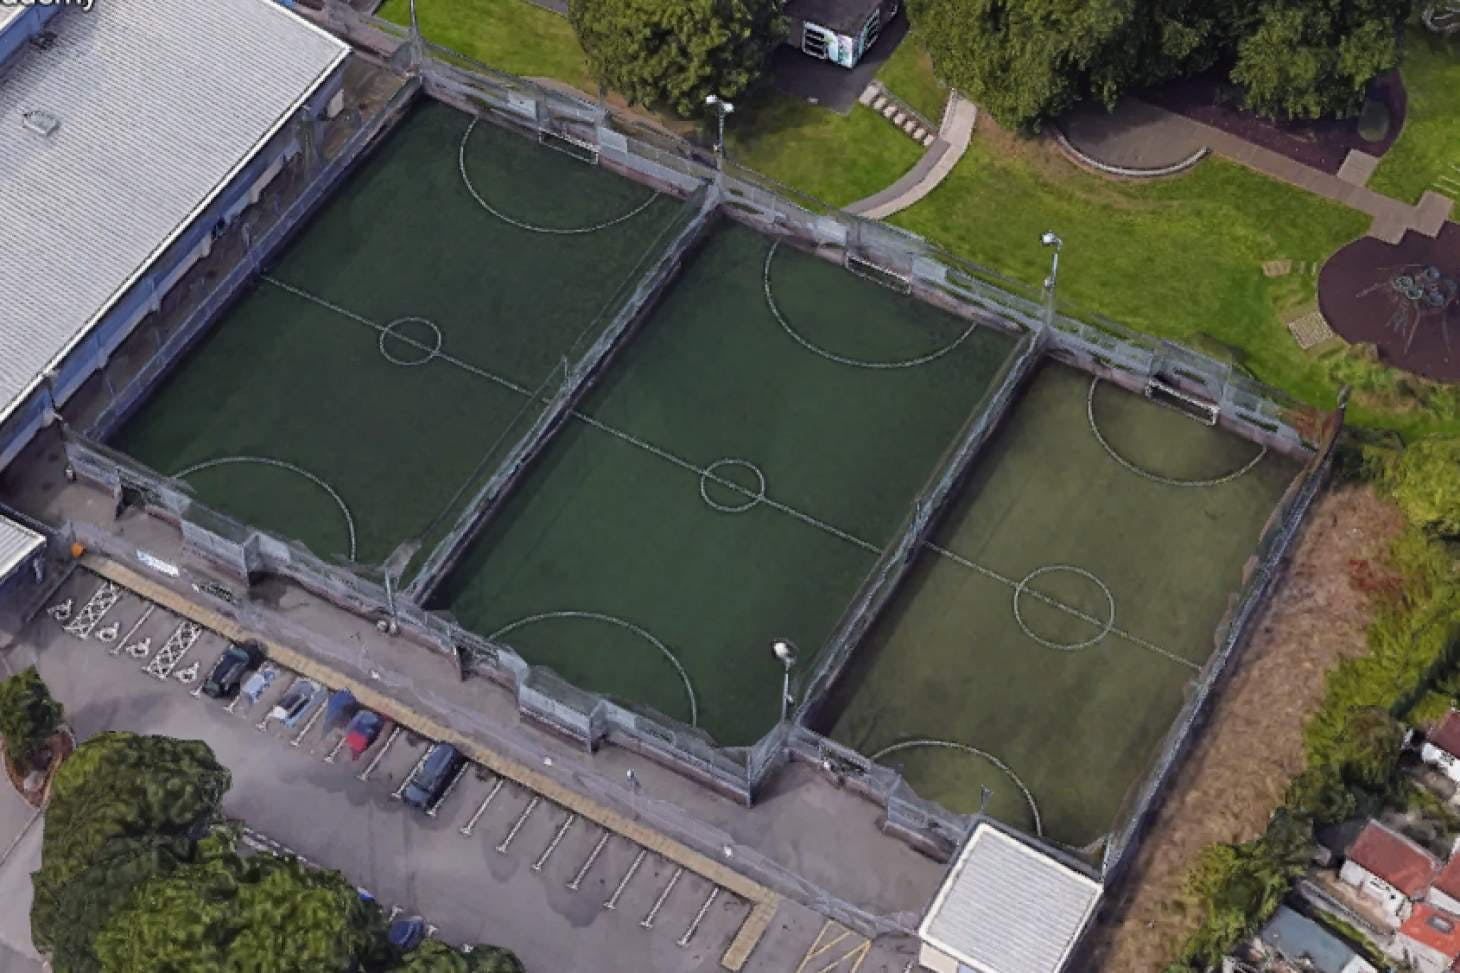 PlayFootball Bristol St Pauls 6 a side | 3G Astroturf football pitch